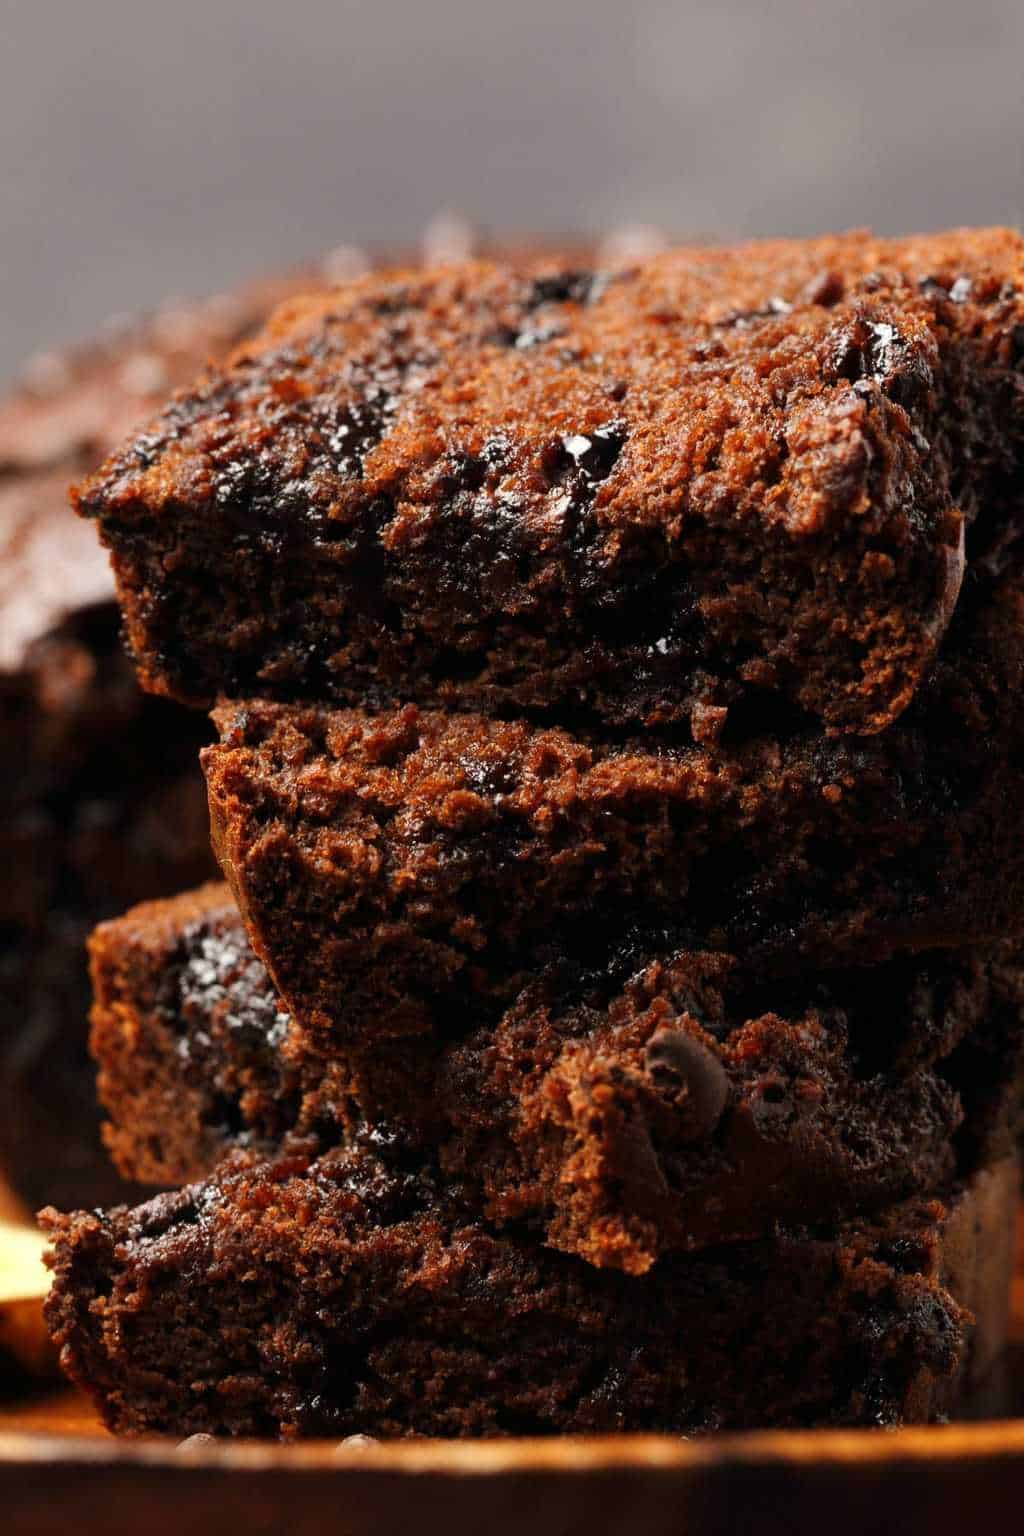 Slices of vegan chocolate banana bread in a stack.